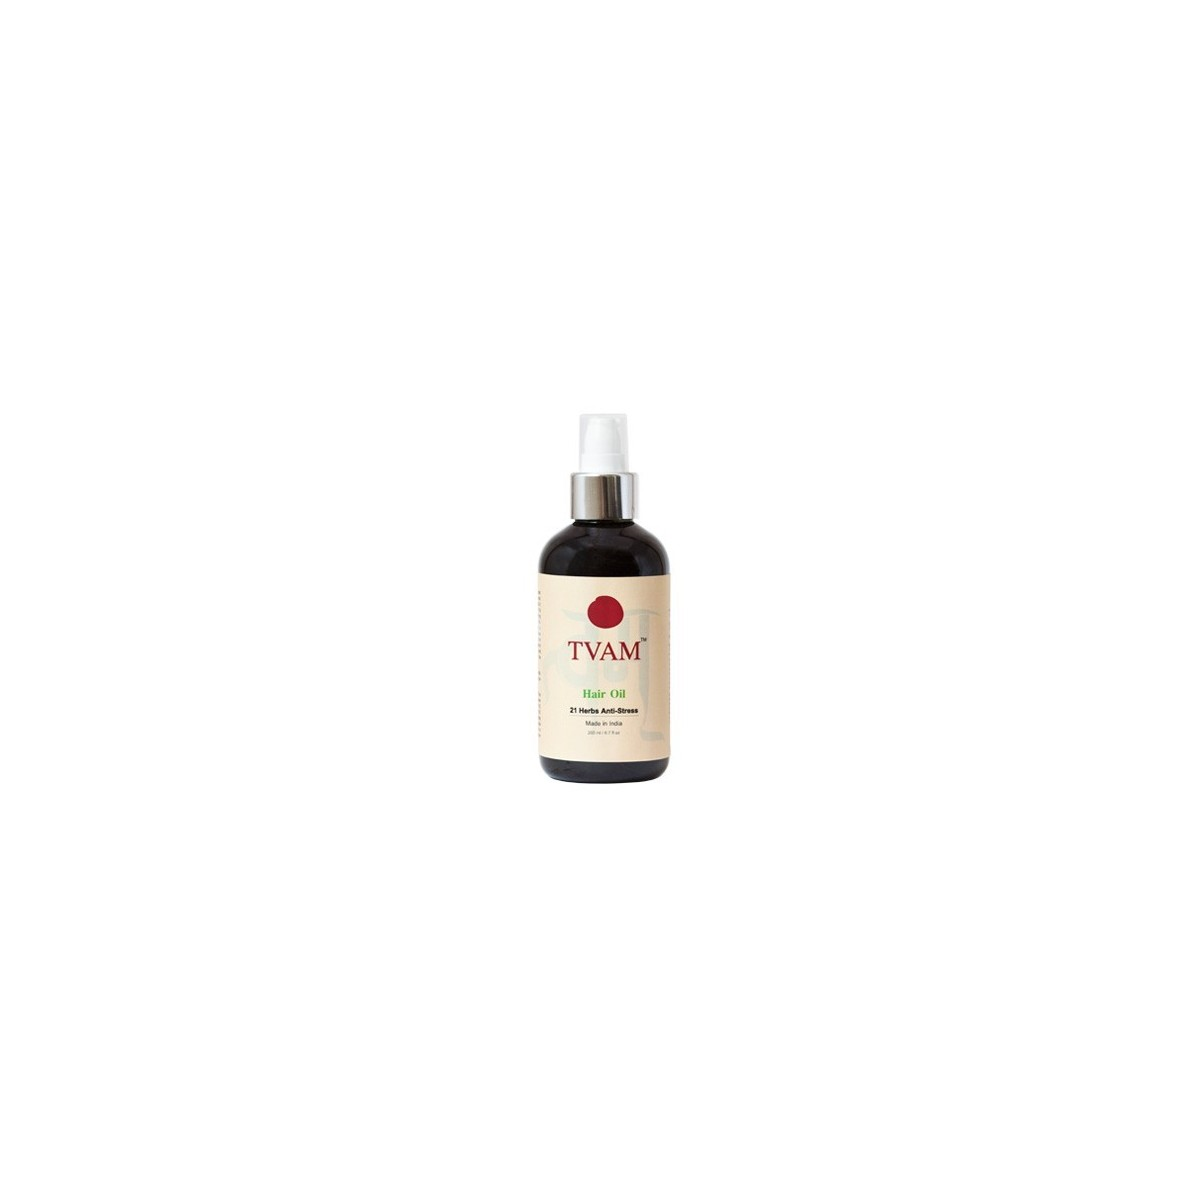 Tvam 21 Herbs Anti-Stress Hair Oil